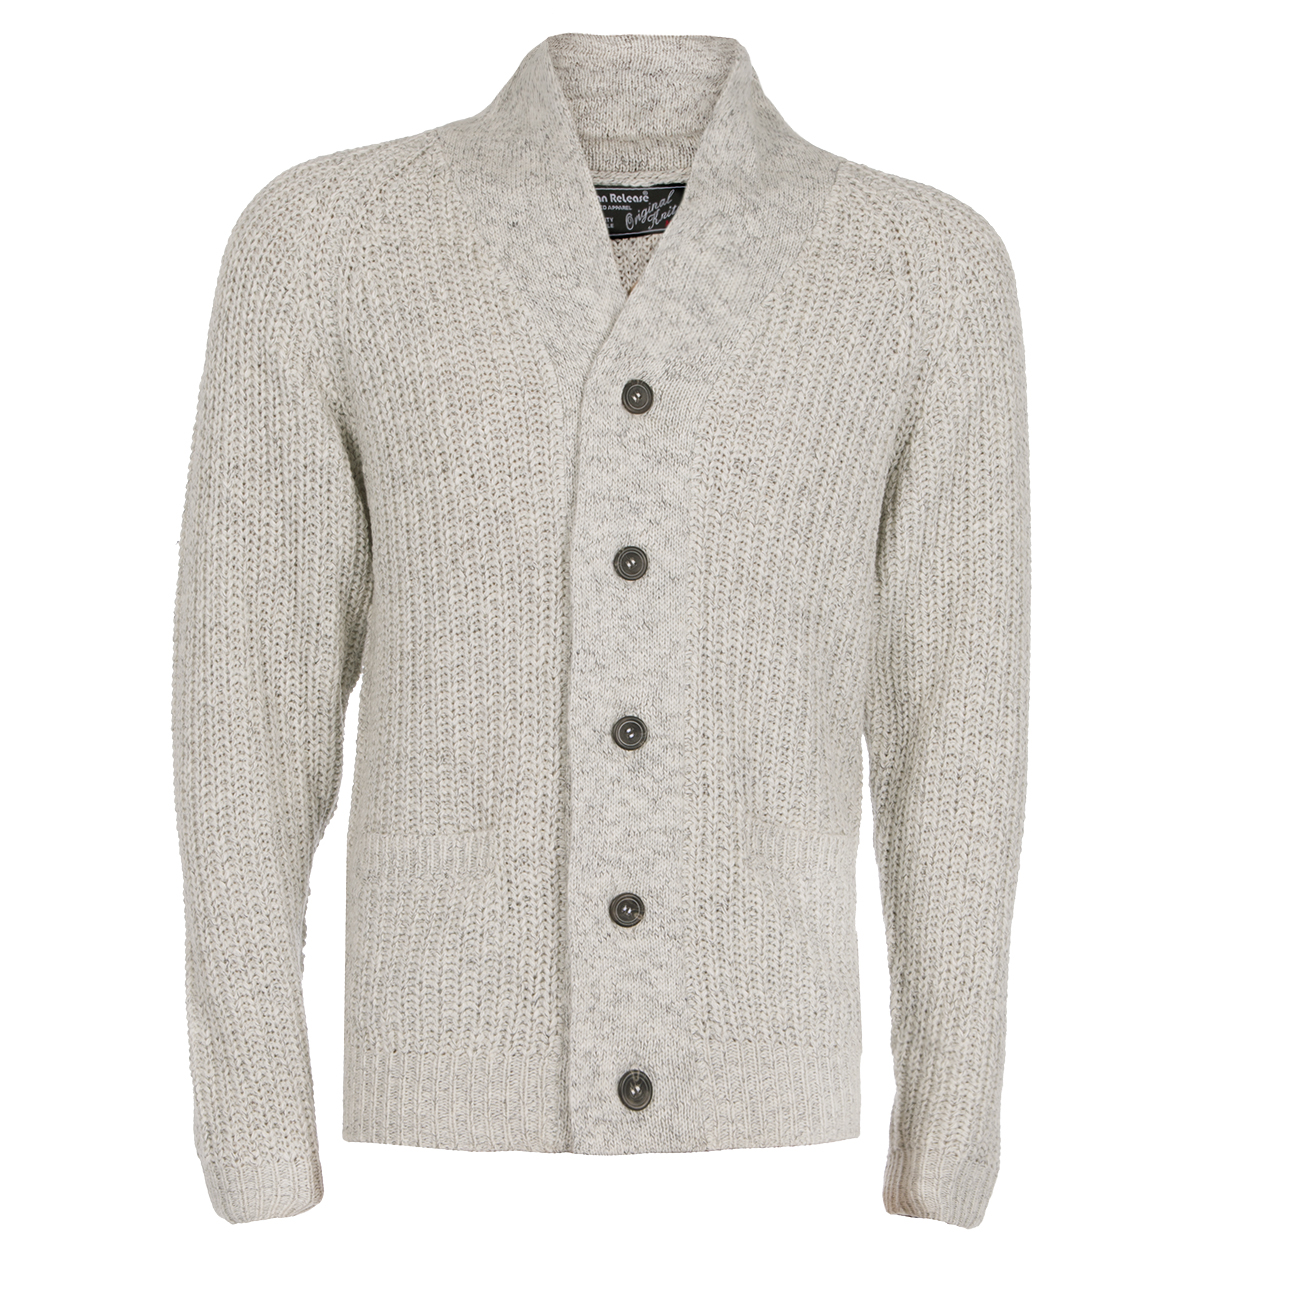 Homme-Tricot-Cardigan-boutonne-col-chale-Pull-Knitwear-Travail-Pull-UK miniature 6